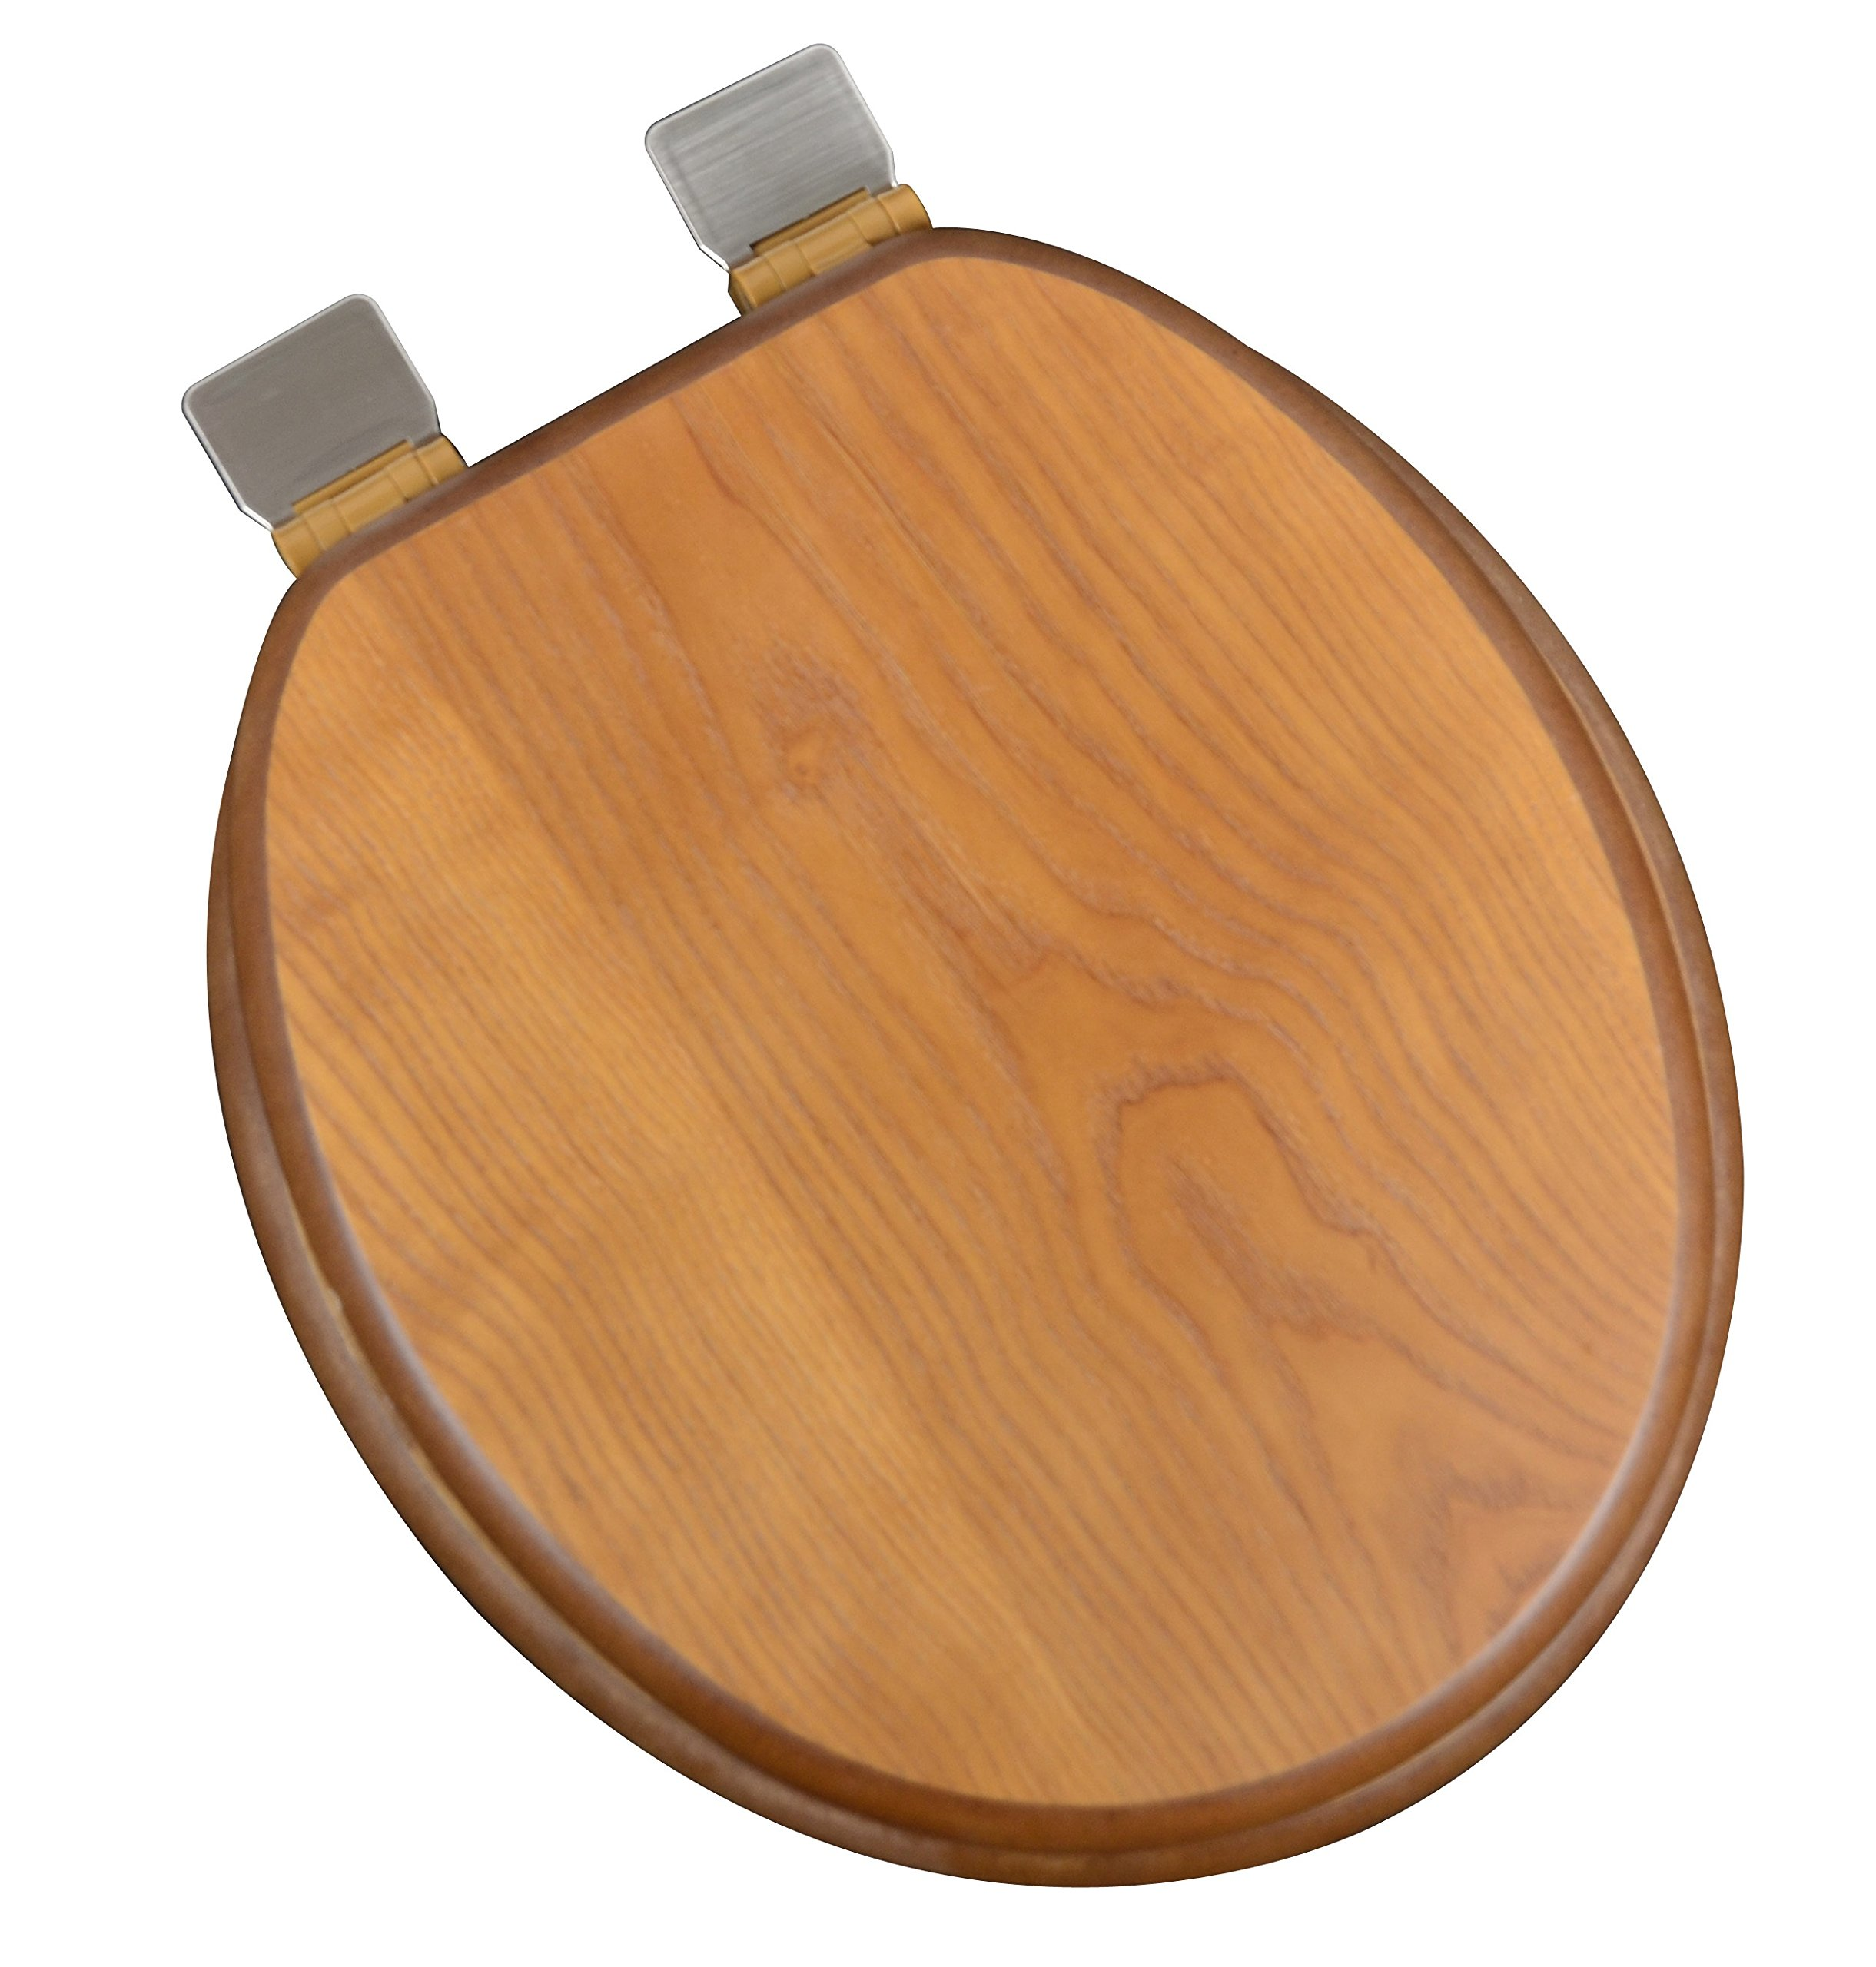 Bath Décor 5F1R1-18BN Round Dark Brown Stained Finish Toilet Seat with Adjustable Brushed Nickel Hinge and Decorative Finish